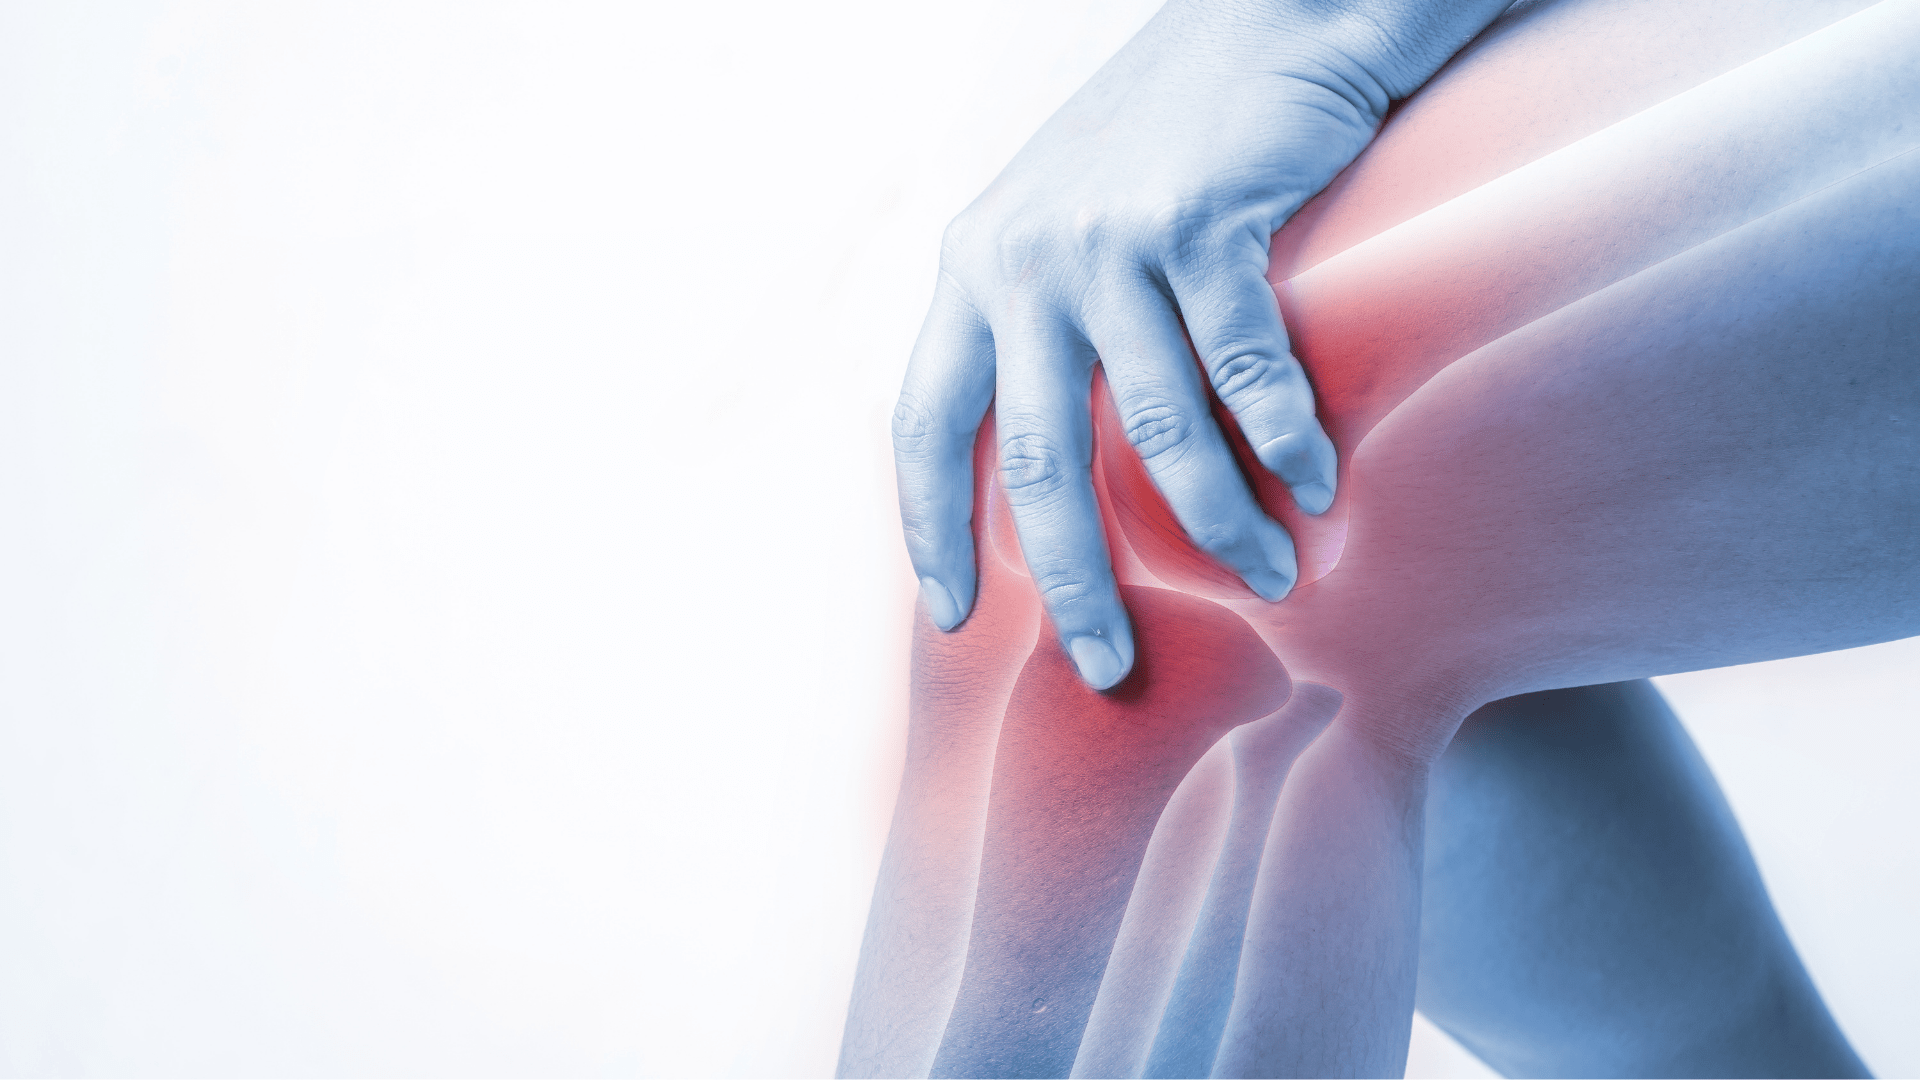 patella problems in Sheffield, Rotherham, Doncaster and Worksop